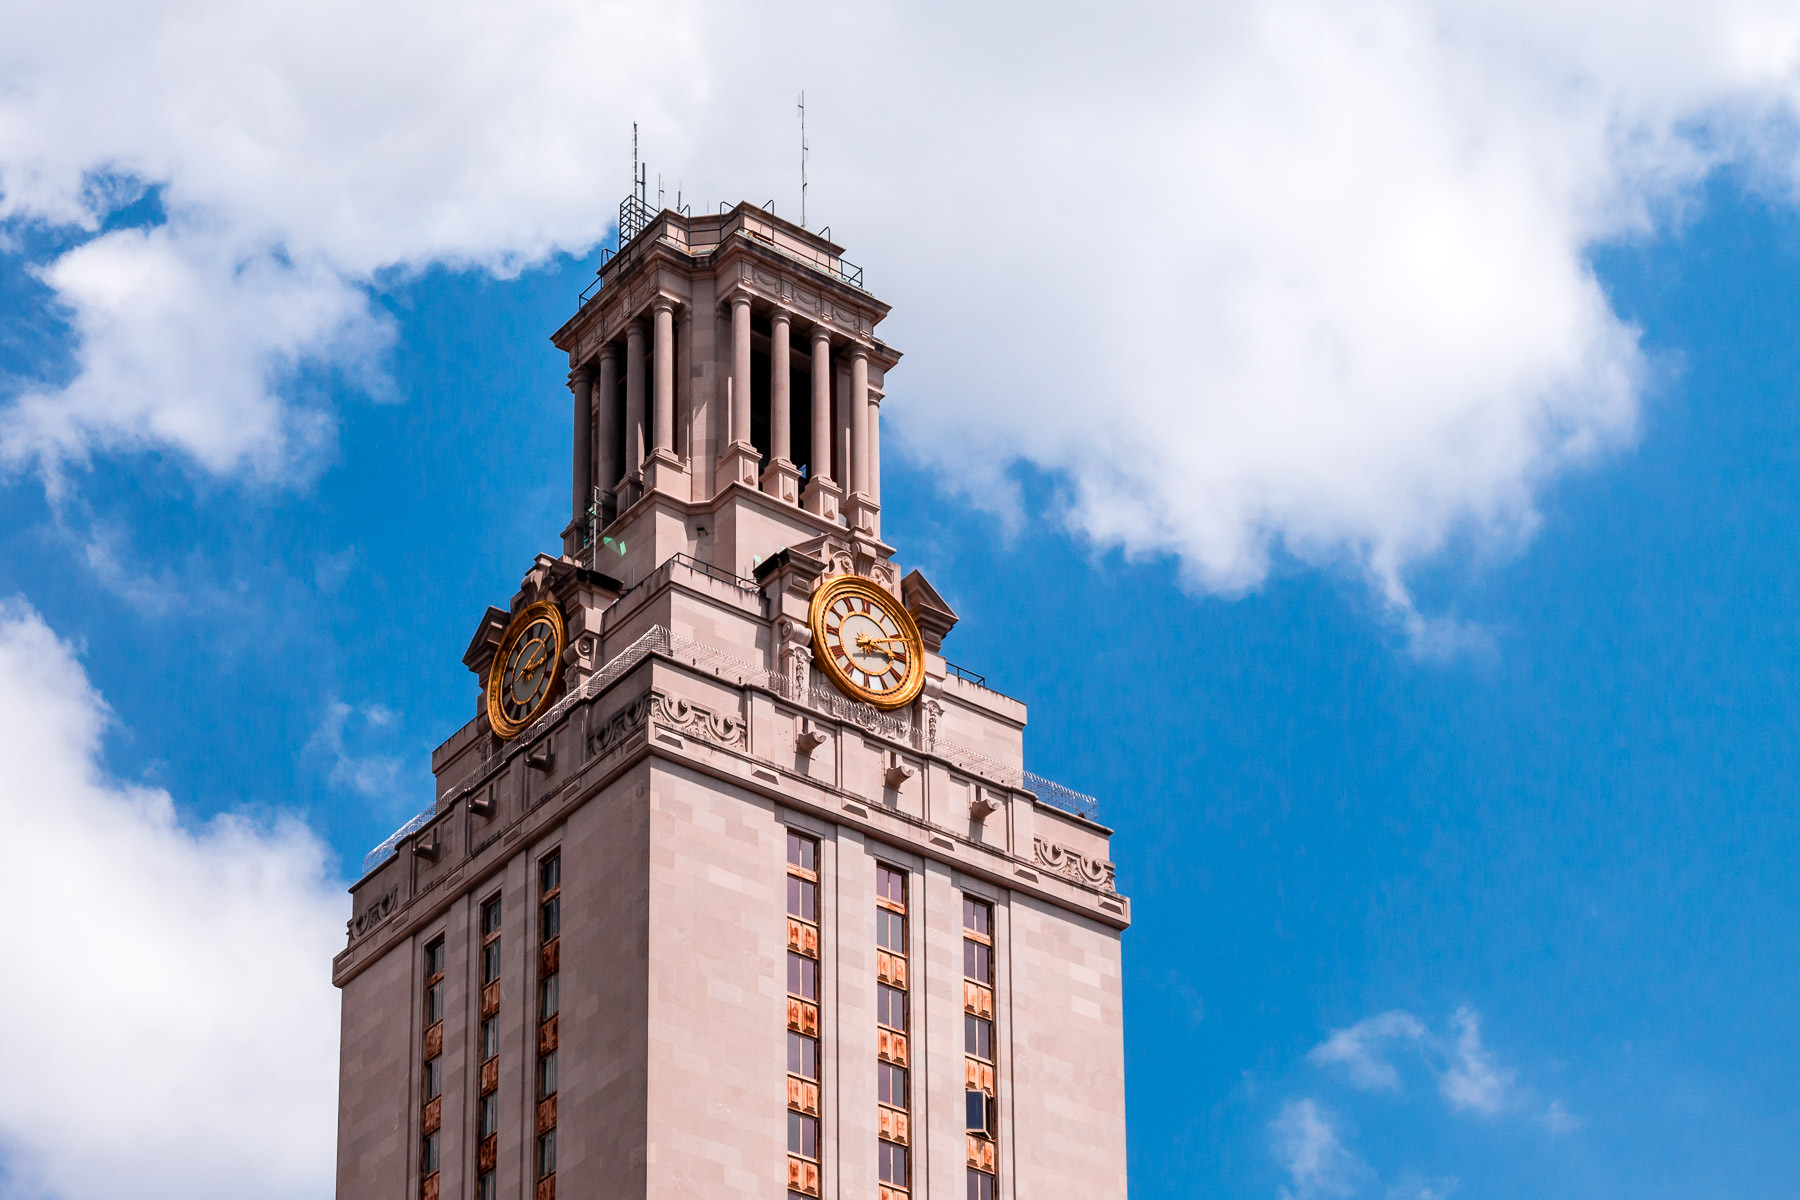 The 307-foot-tall Main Building at the University of Texas at Austin rises into the cloudy Texas sky.